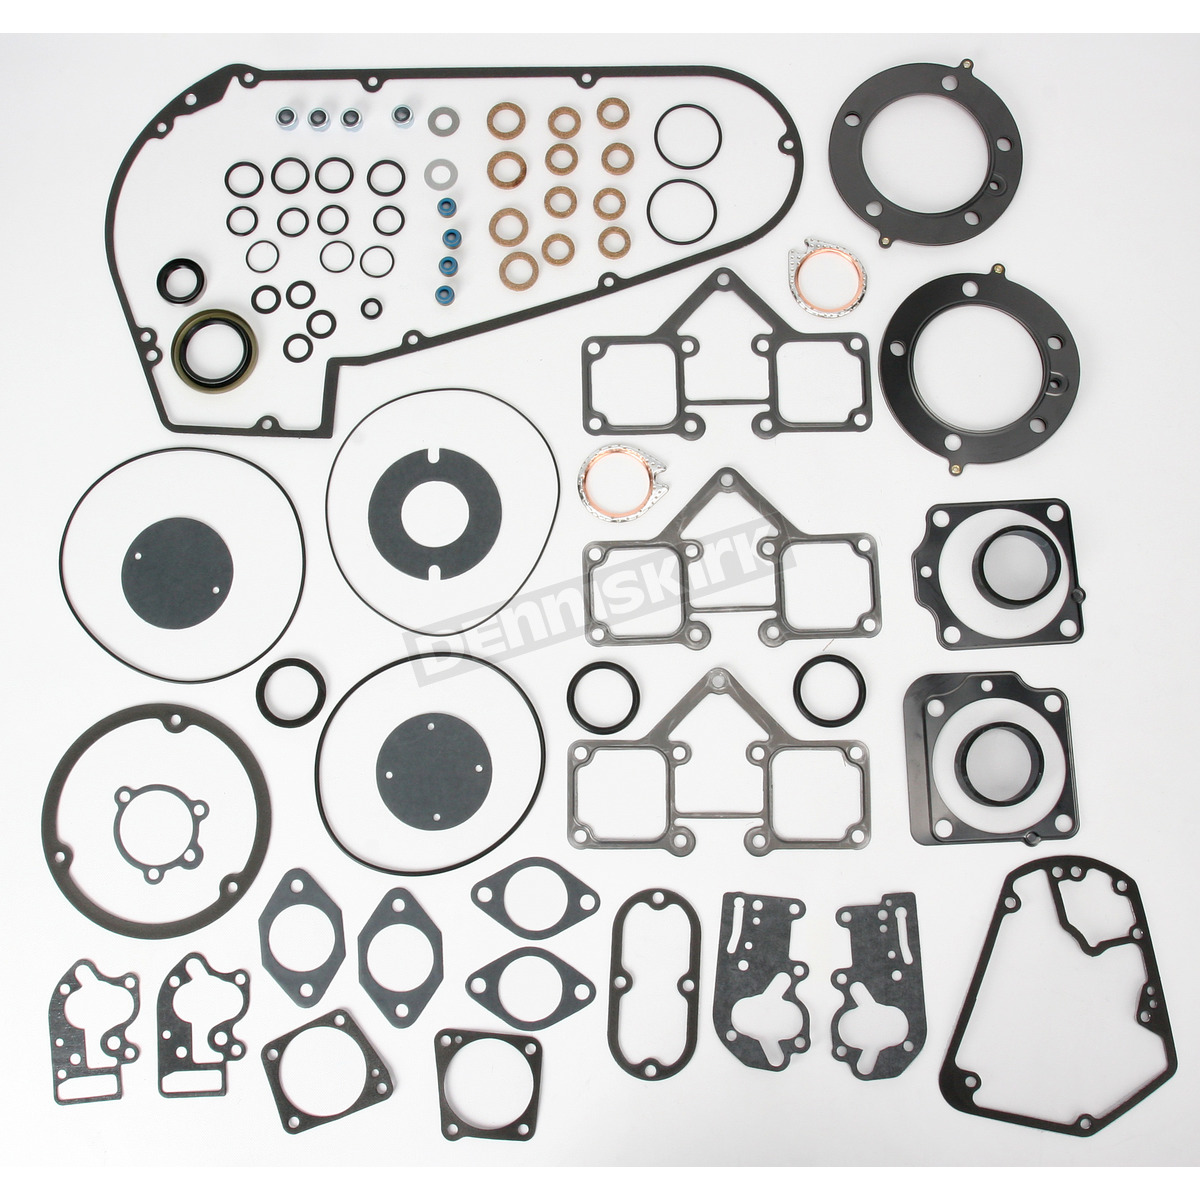 Extreme Sealing Technology (EST) Complete Gasket Set for 74 in  and 80 in   Shovelhead 4-Speed - C9964